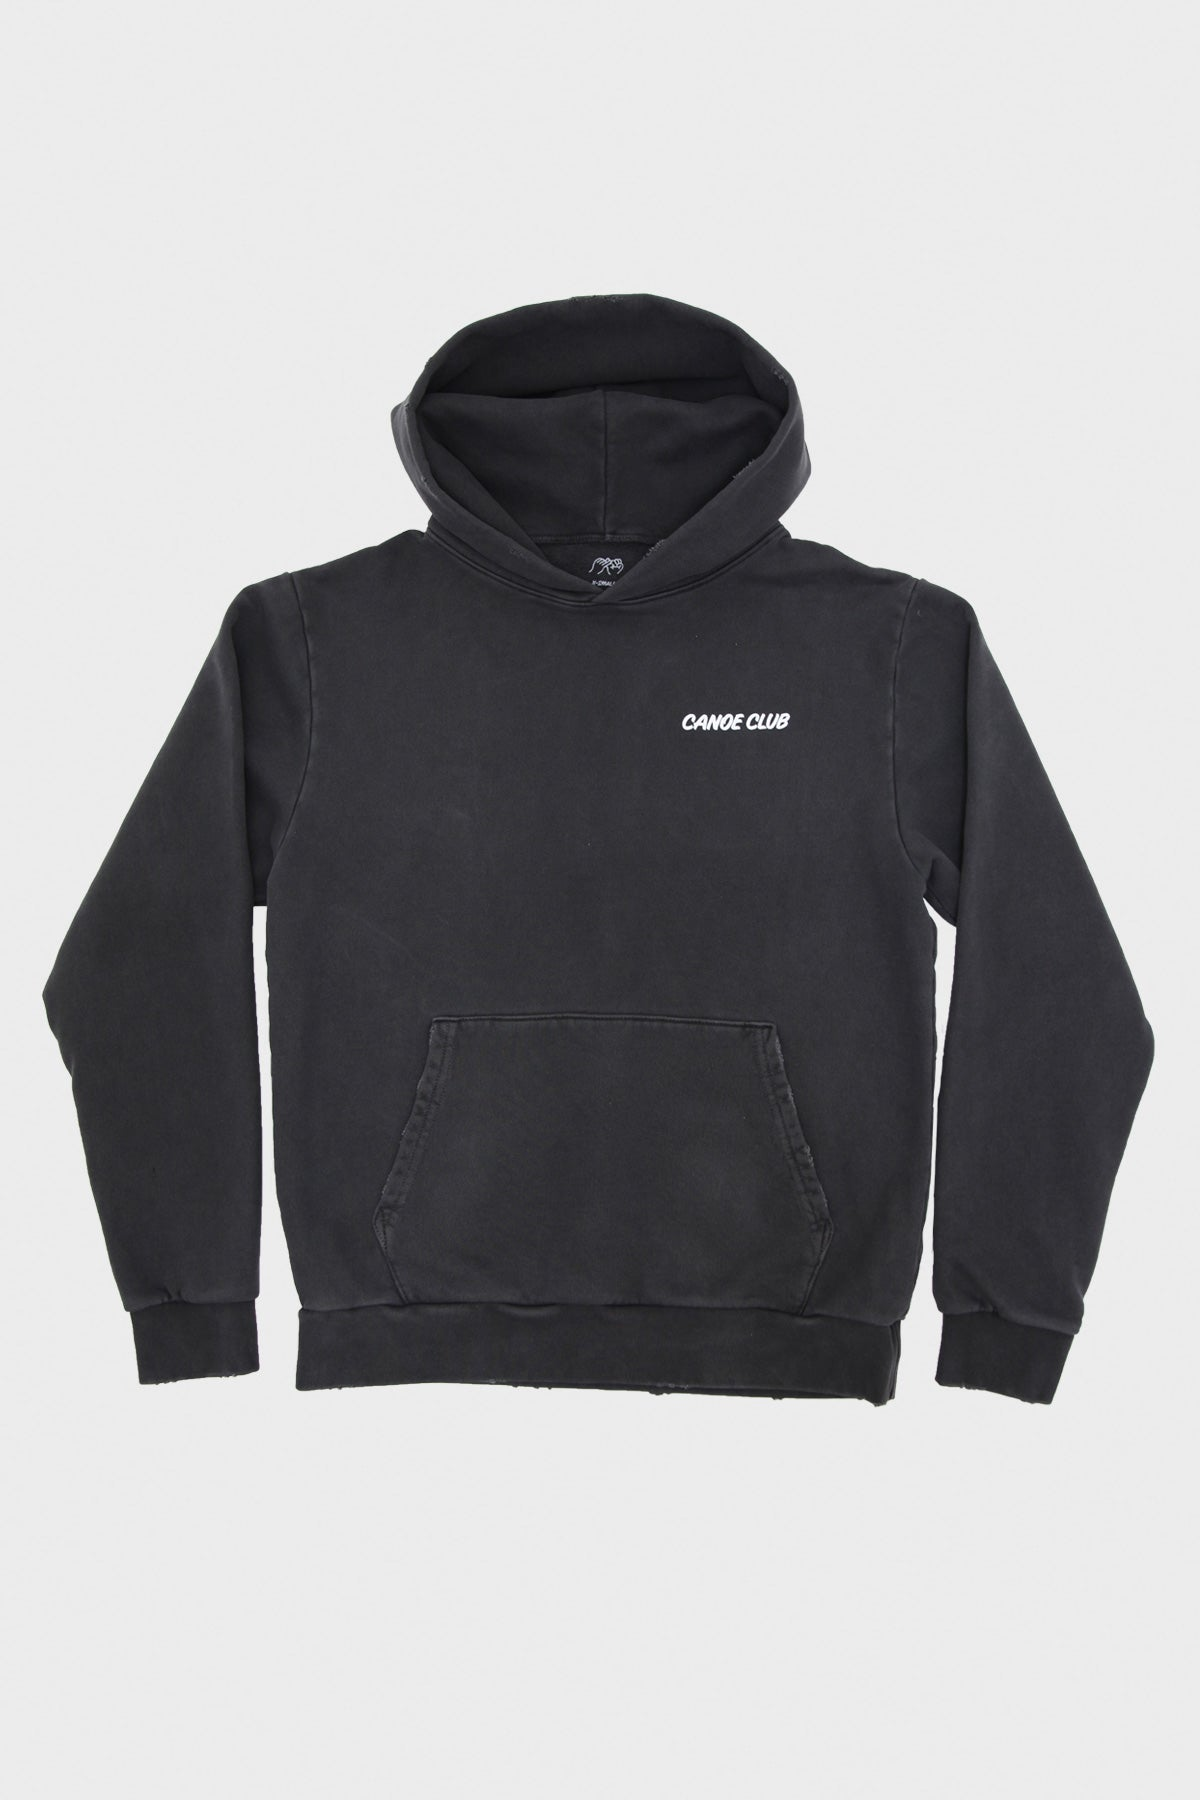 Canoe Club Collaborations - Canoe Club Hoodie - Pigment Dyed Black - Canoe Club